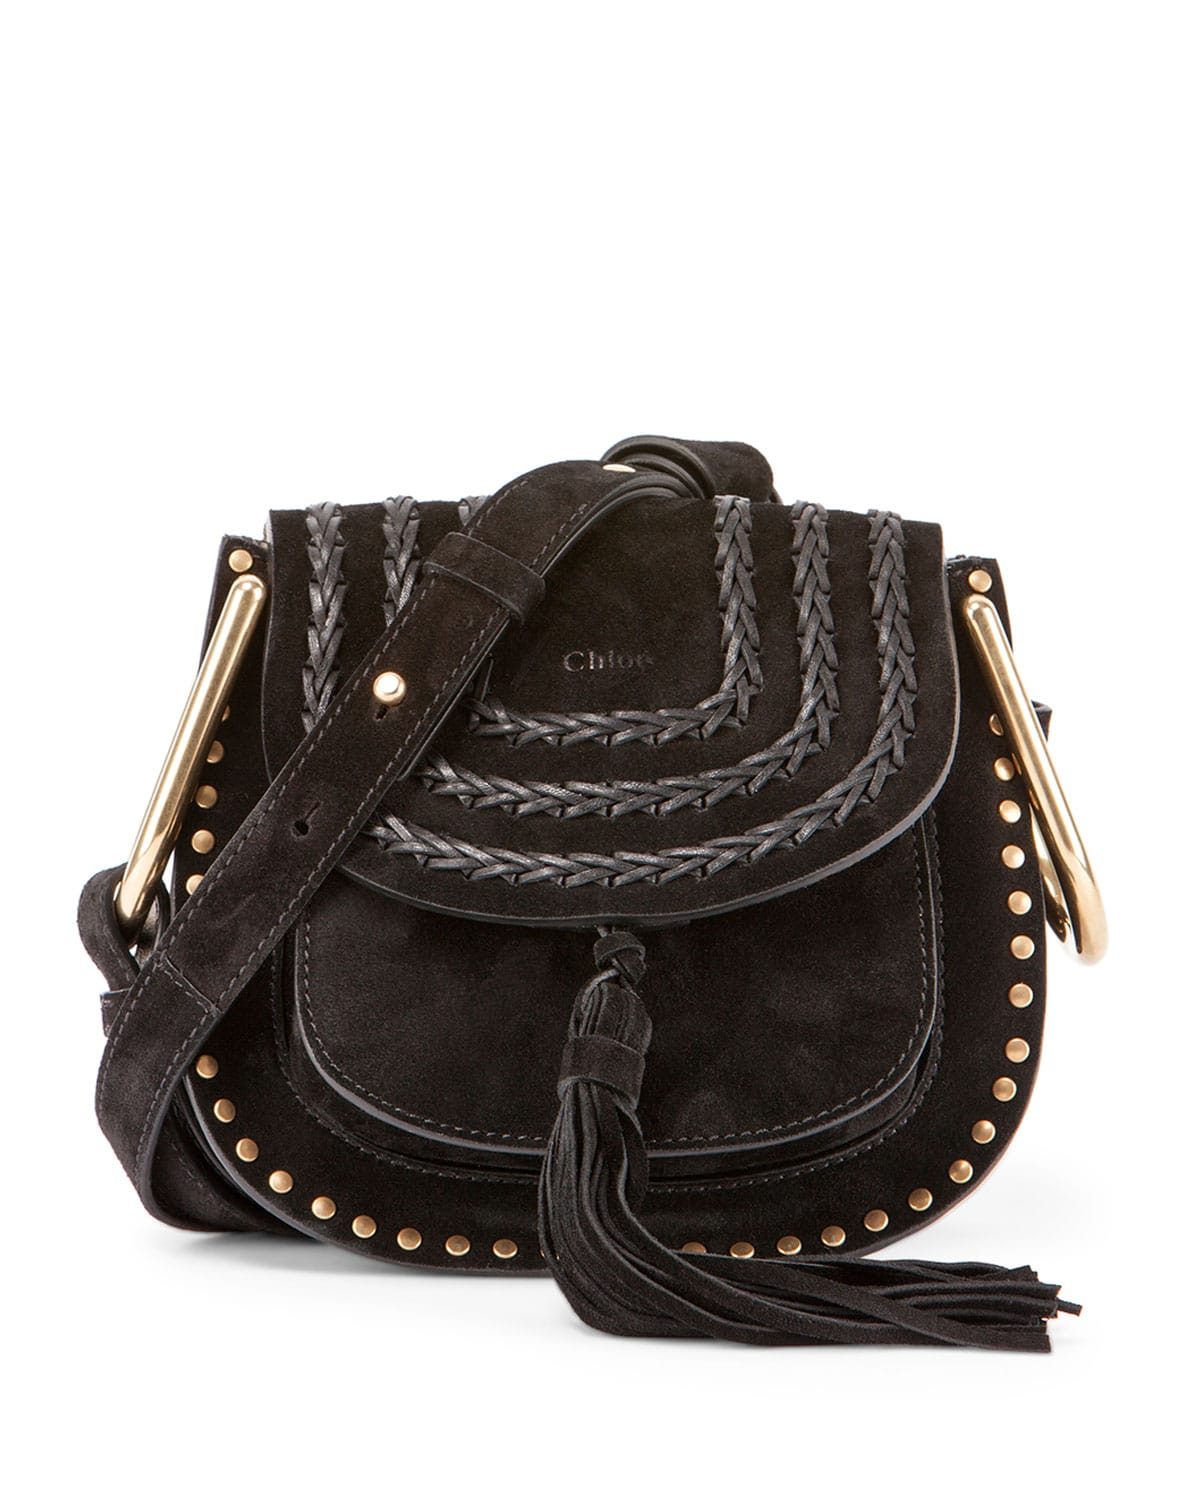 clhoe bag - Chloe Fall / Winter 2015 Bag Collection Featuring Fringe Bags ...